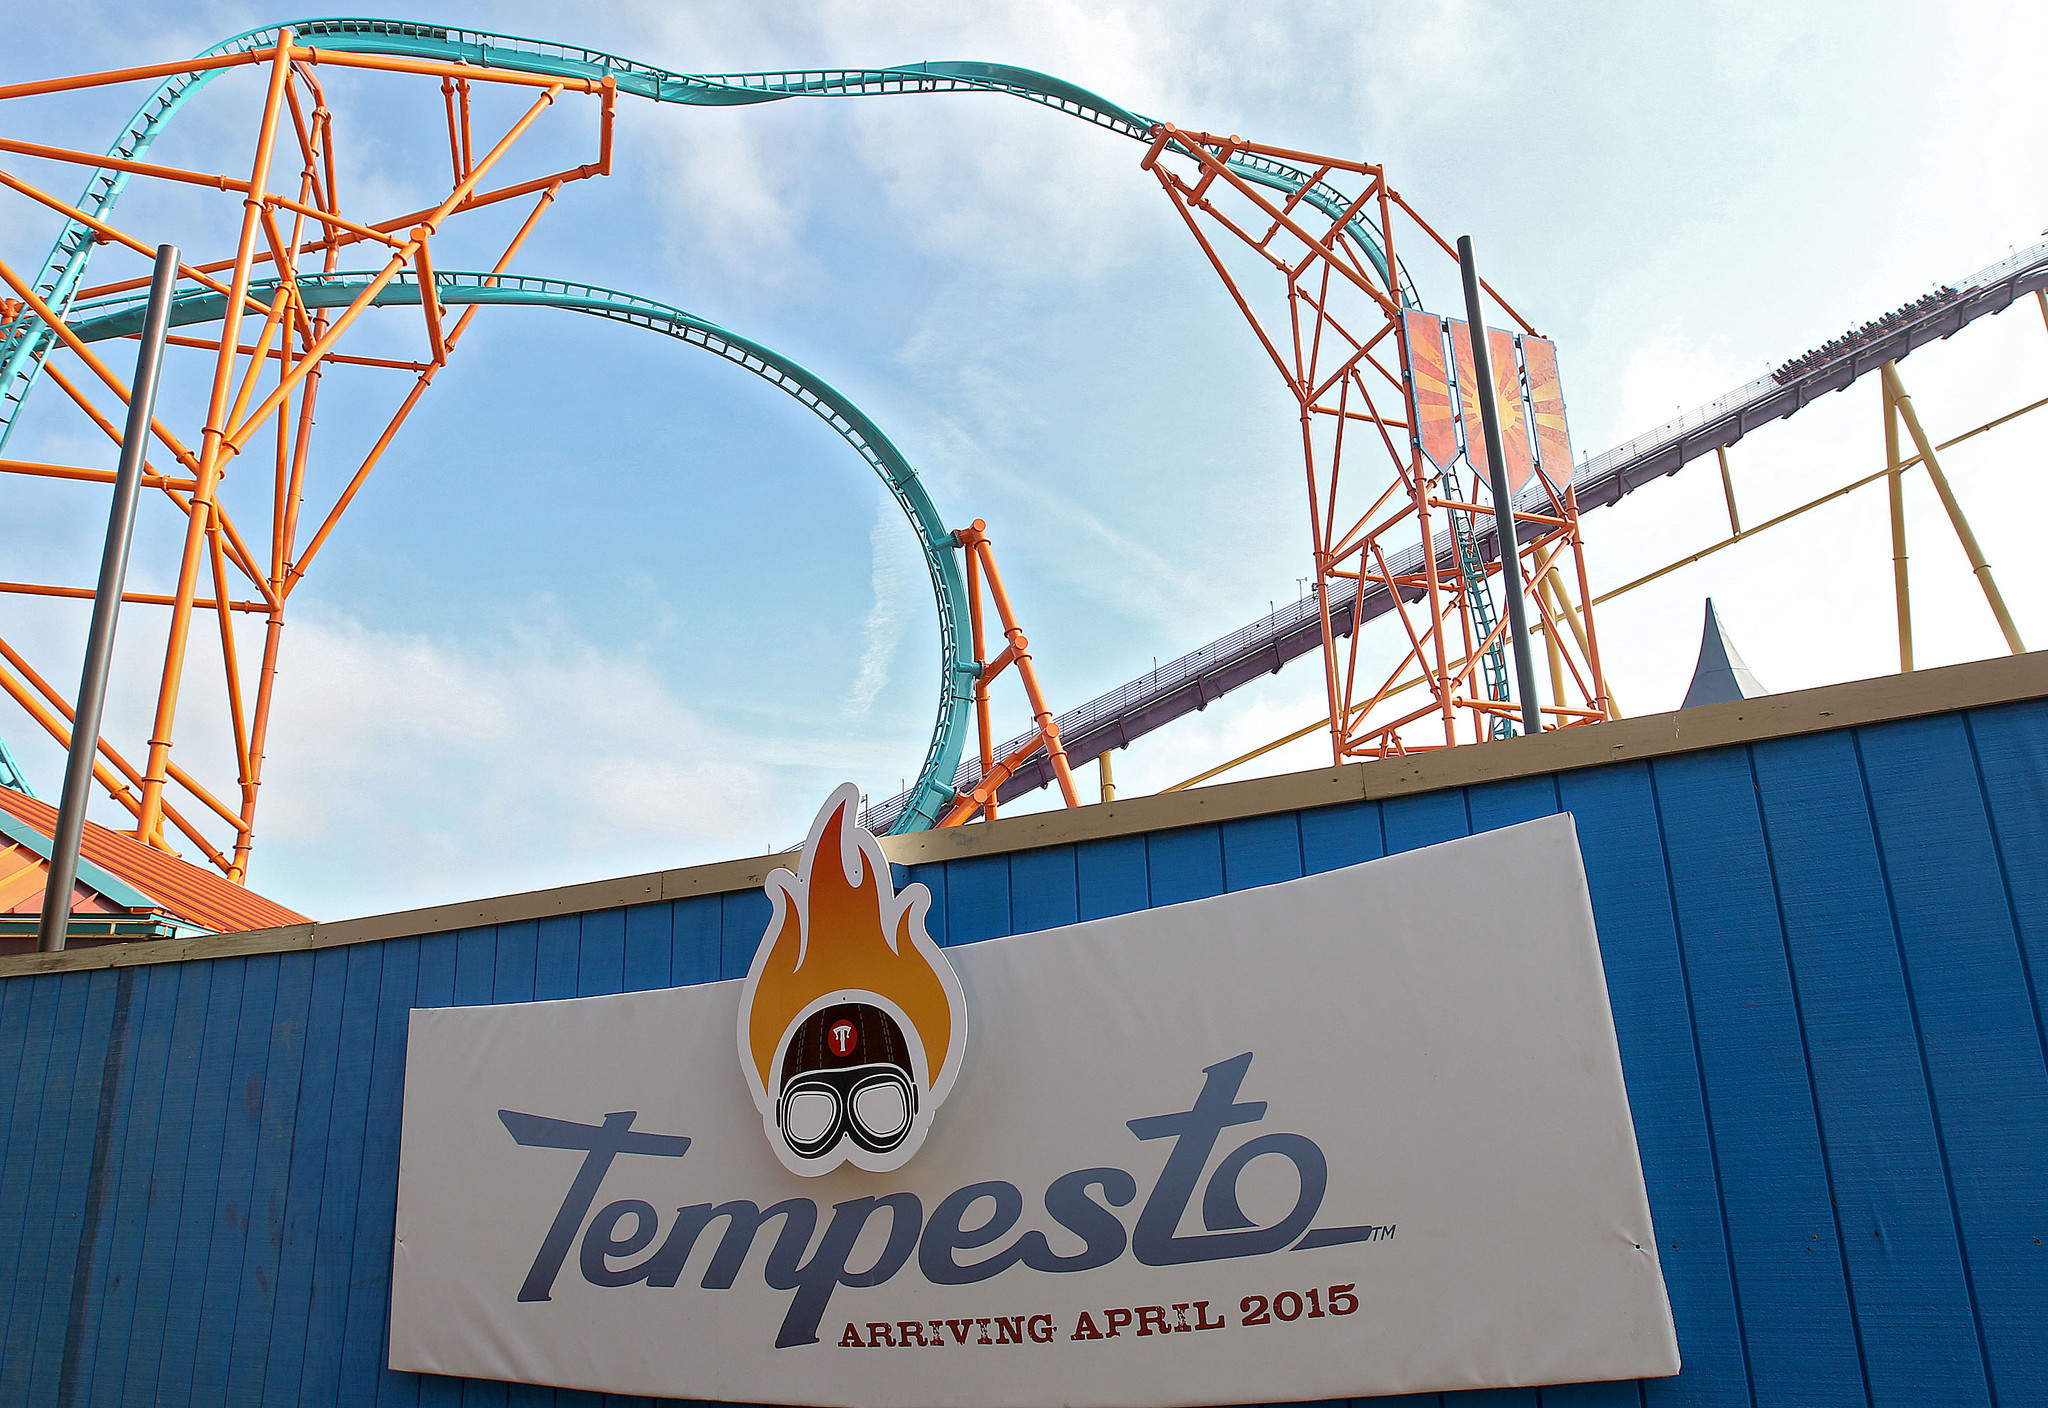 Roller coasters of the virginia peninsula capital gazette for New rollercoaster at busch gardens